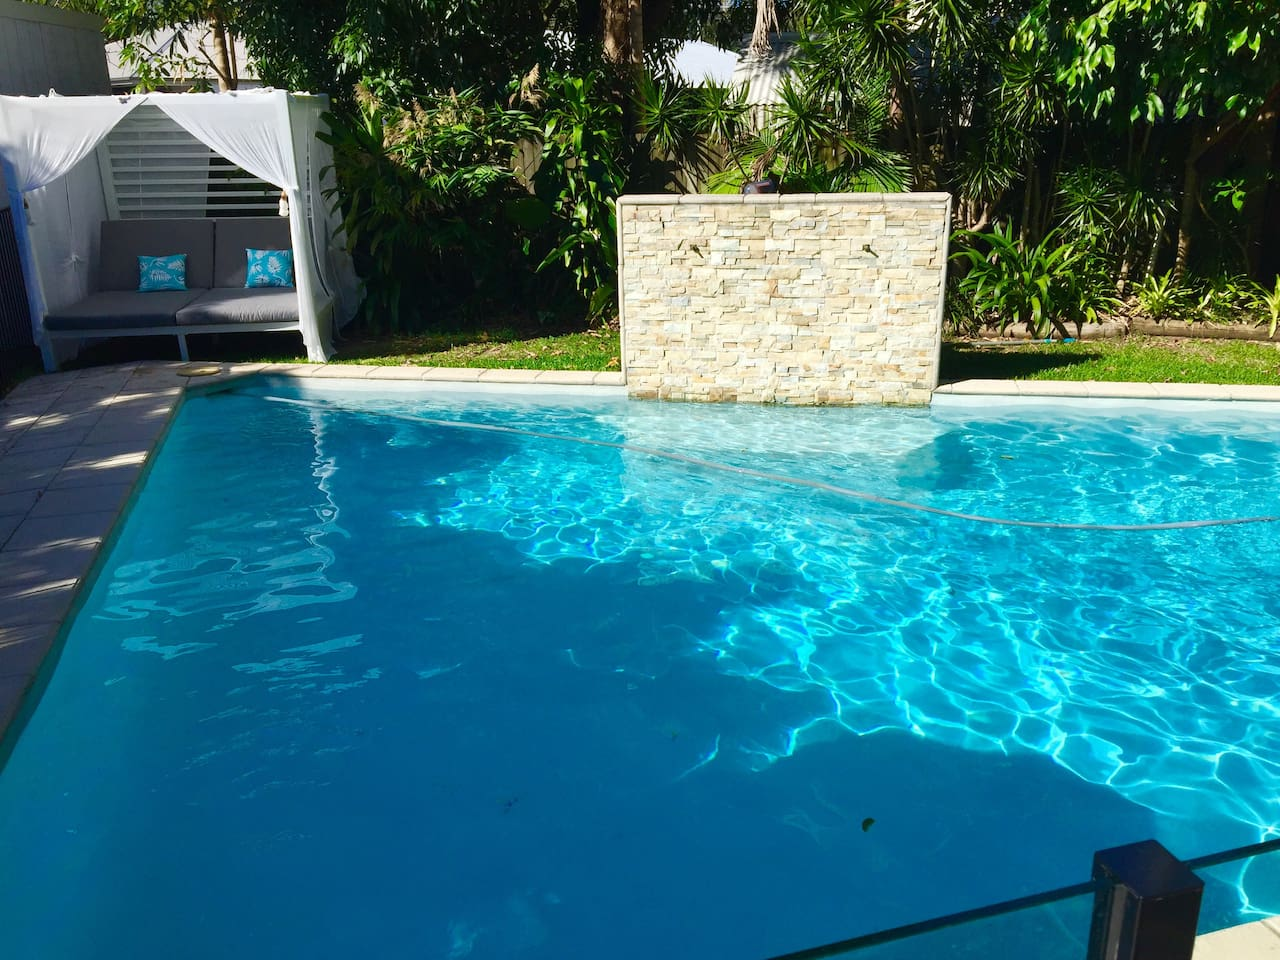 Tiki House features a large pool and entertaining area